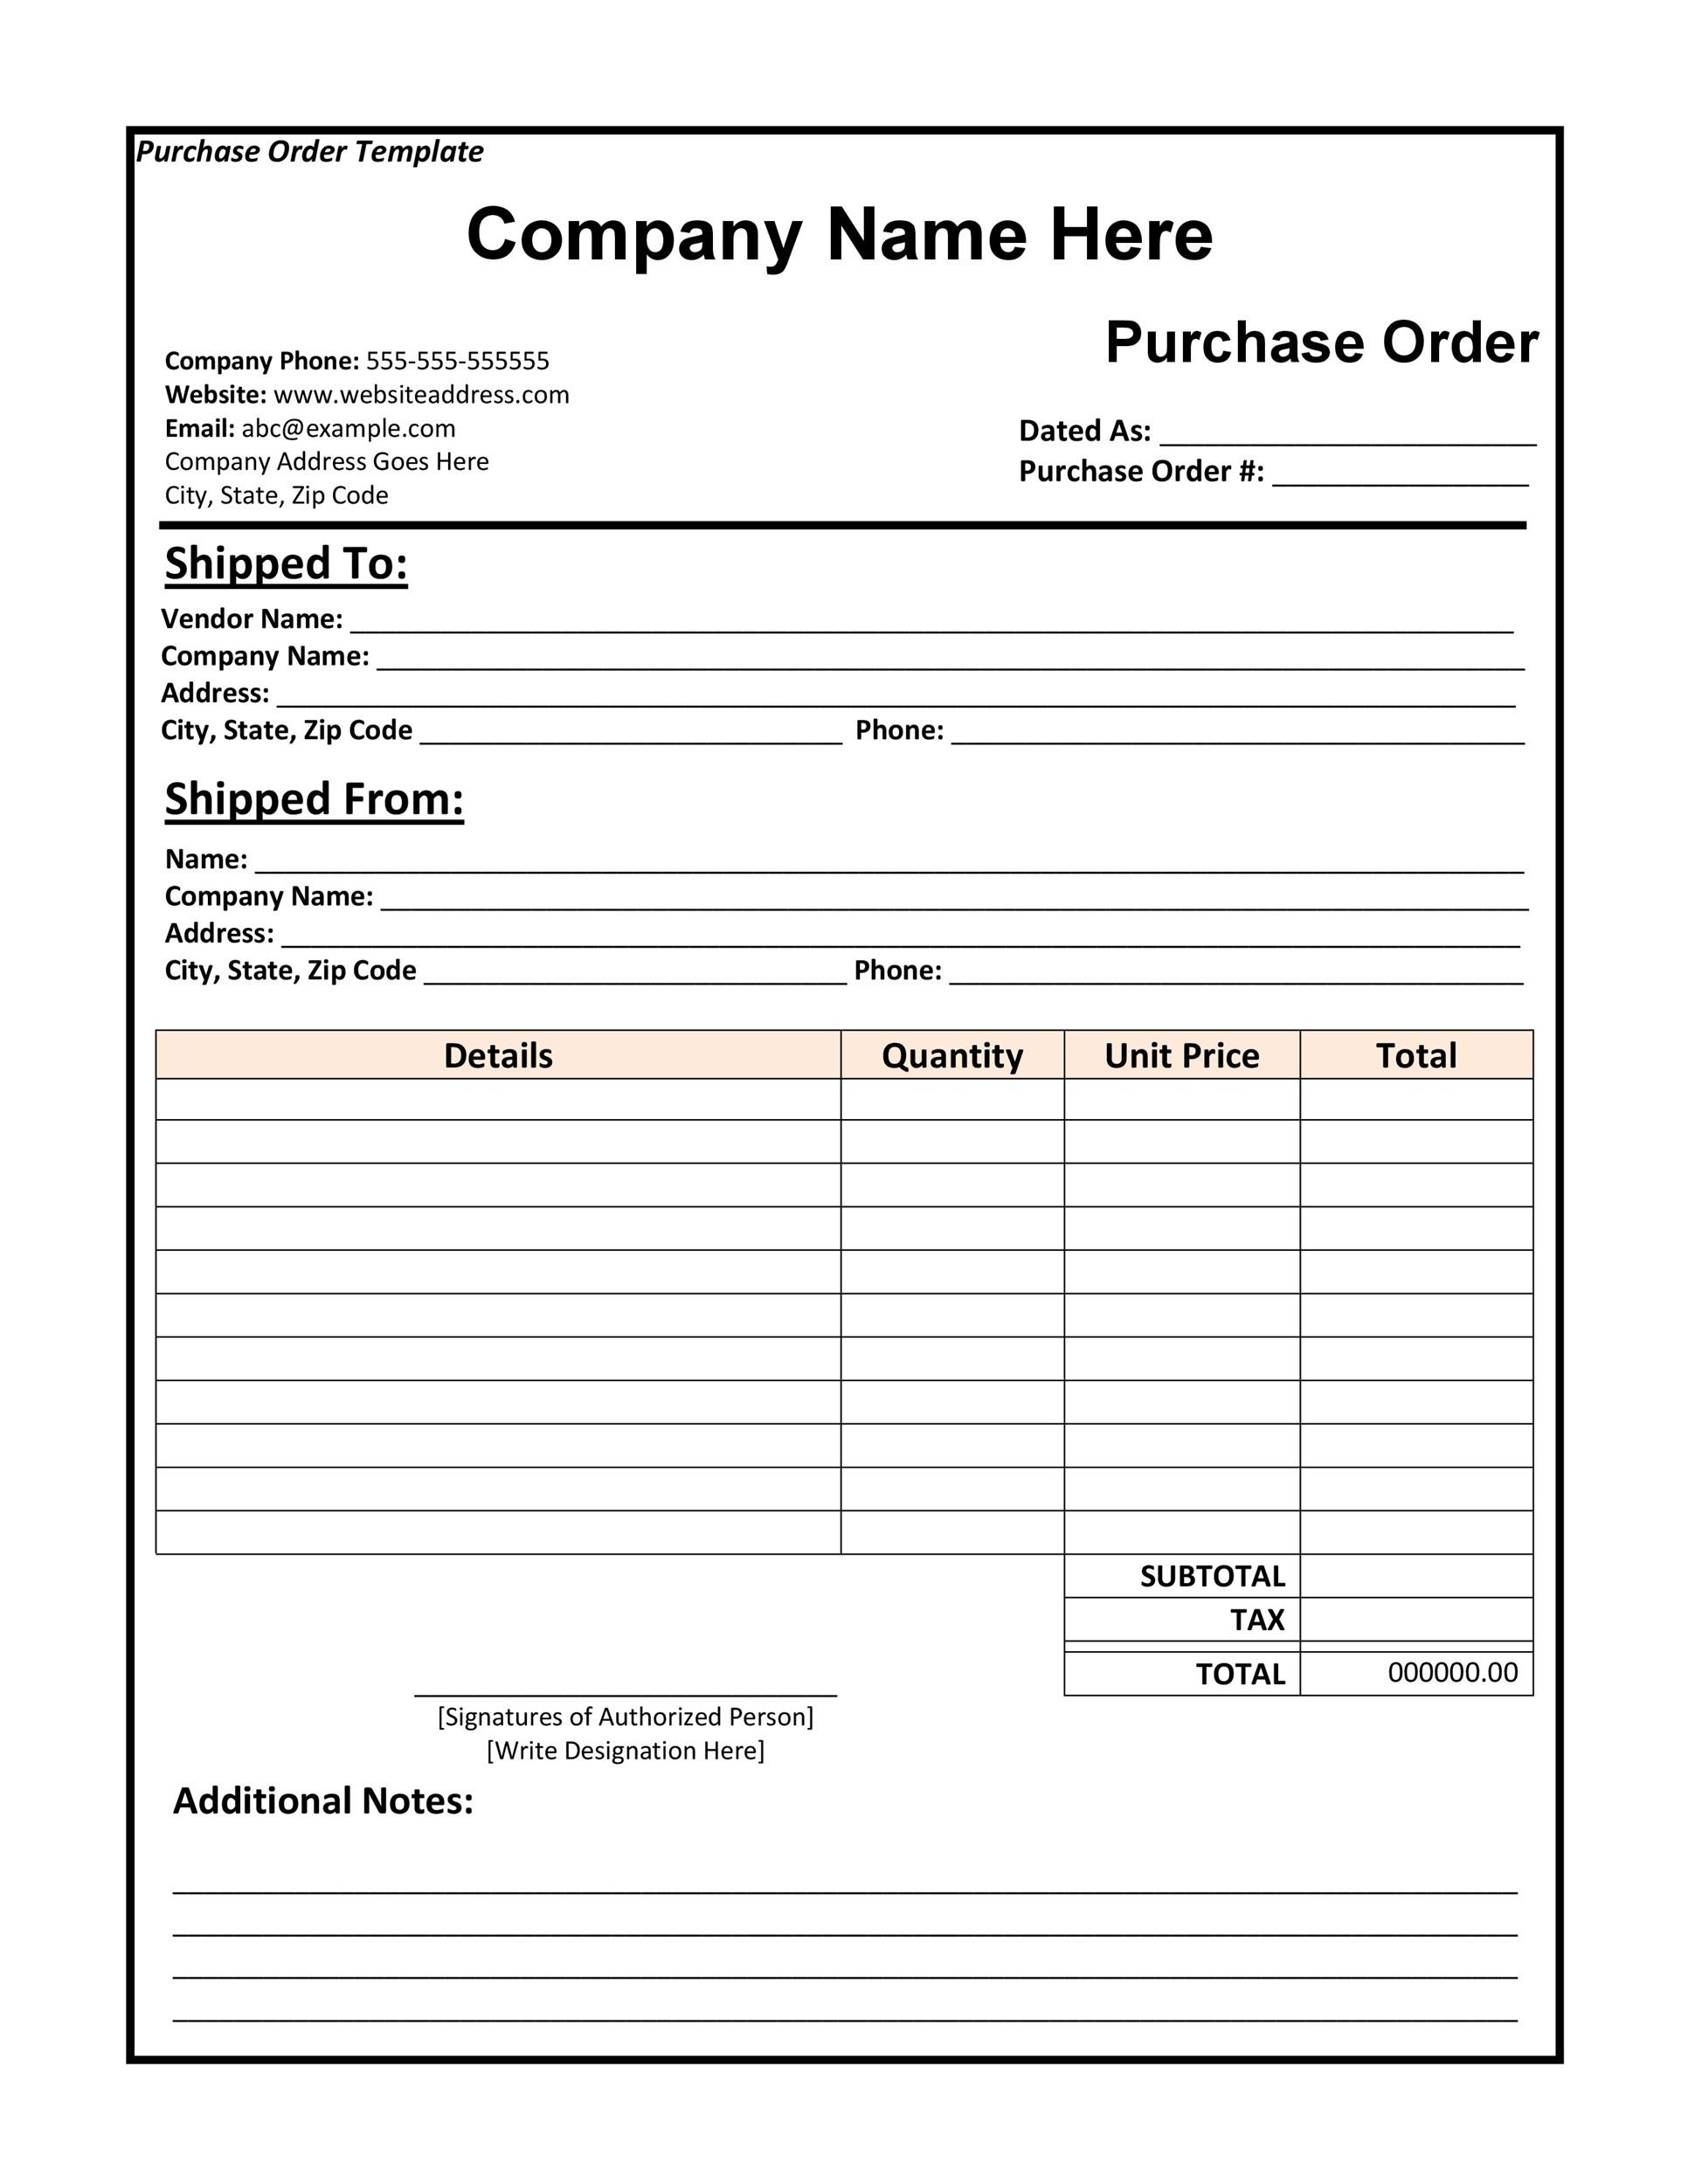 Printable Purchase Order Template 03. Icon. Download 37.48 KB  Purchase Order Format Free Download